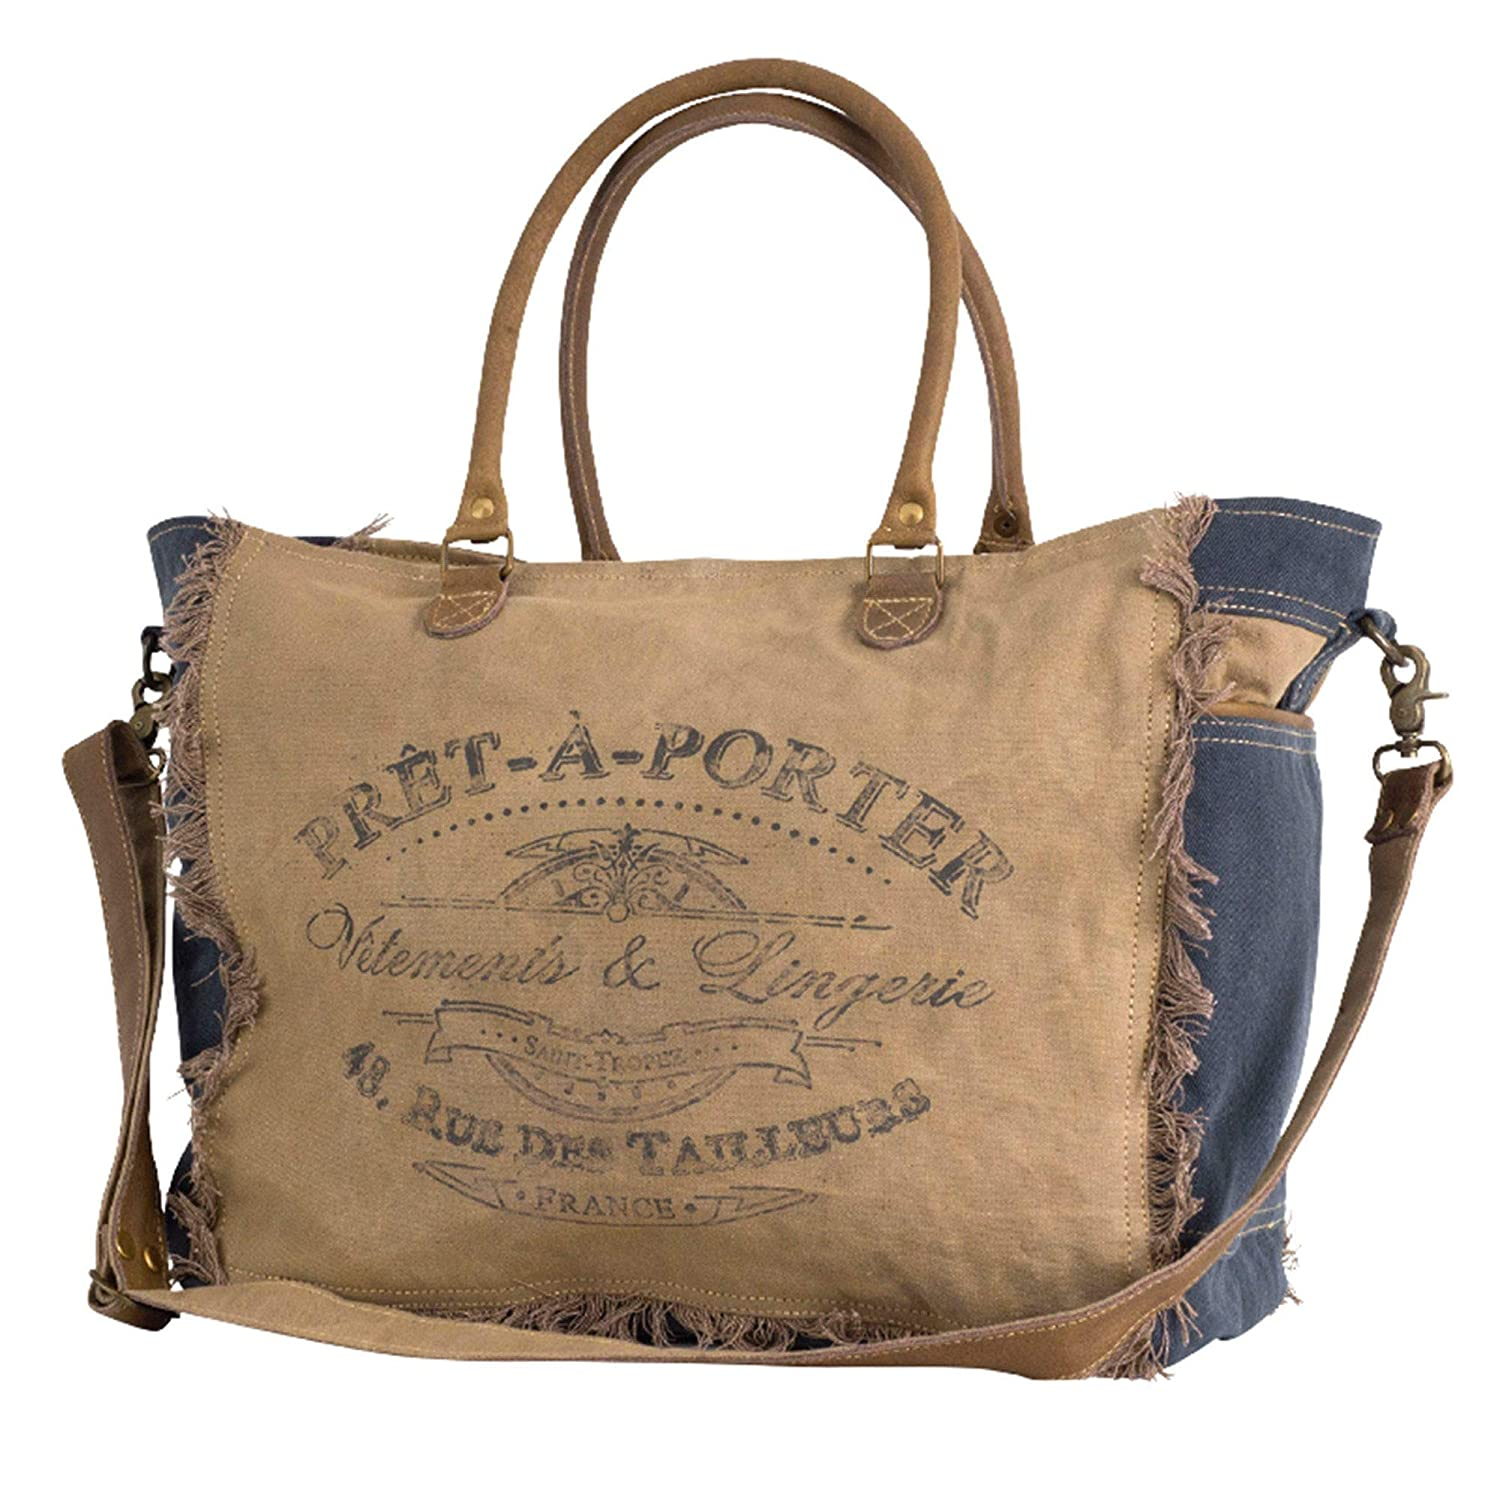 French Pret-A-PorterReady To Wear Canvas Weekender//Duffel Bag by Clea Ray